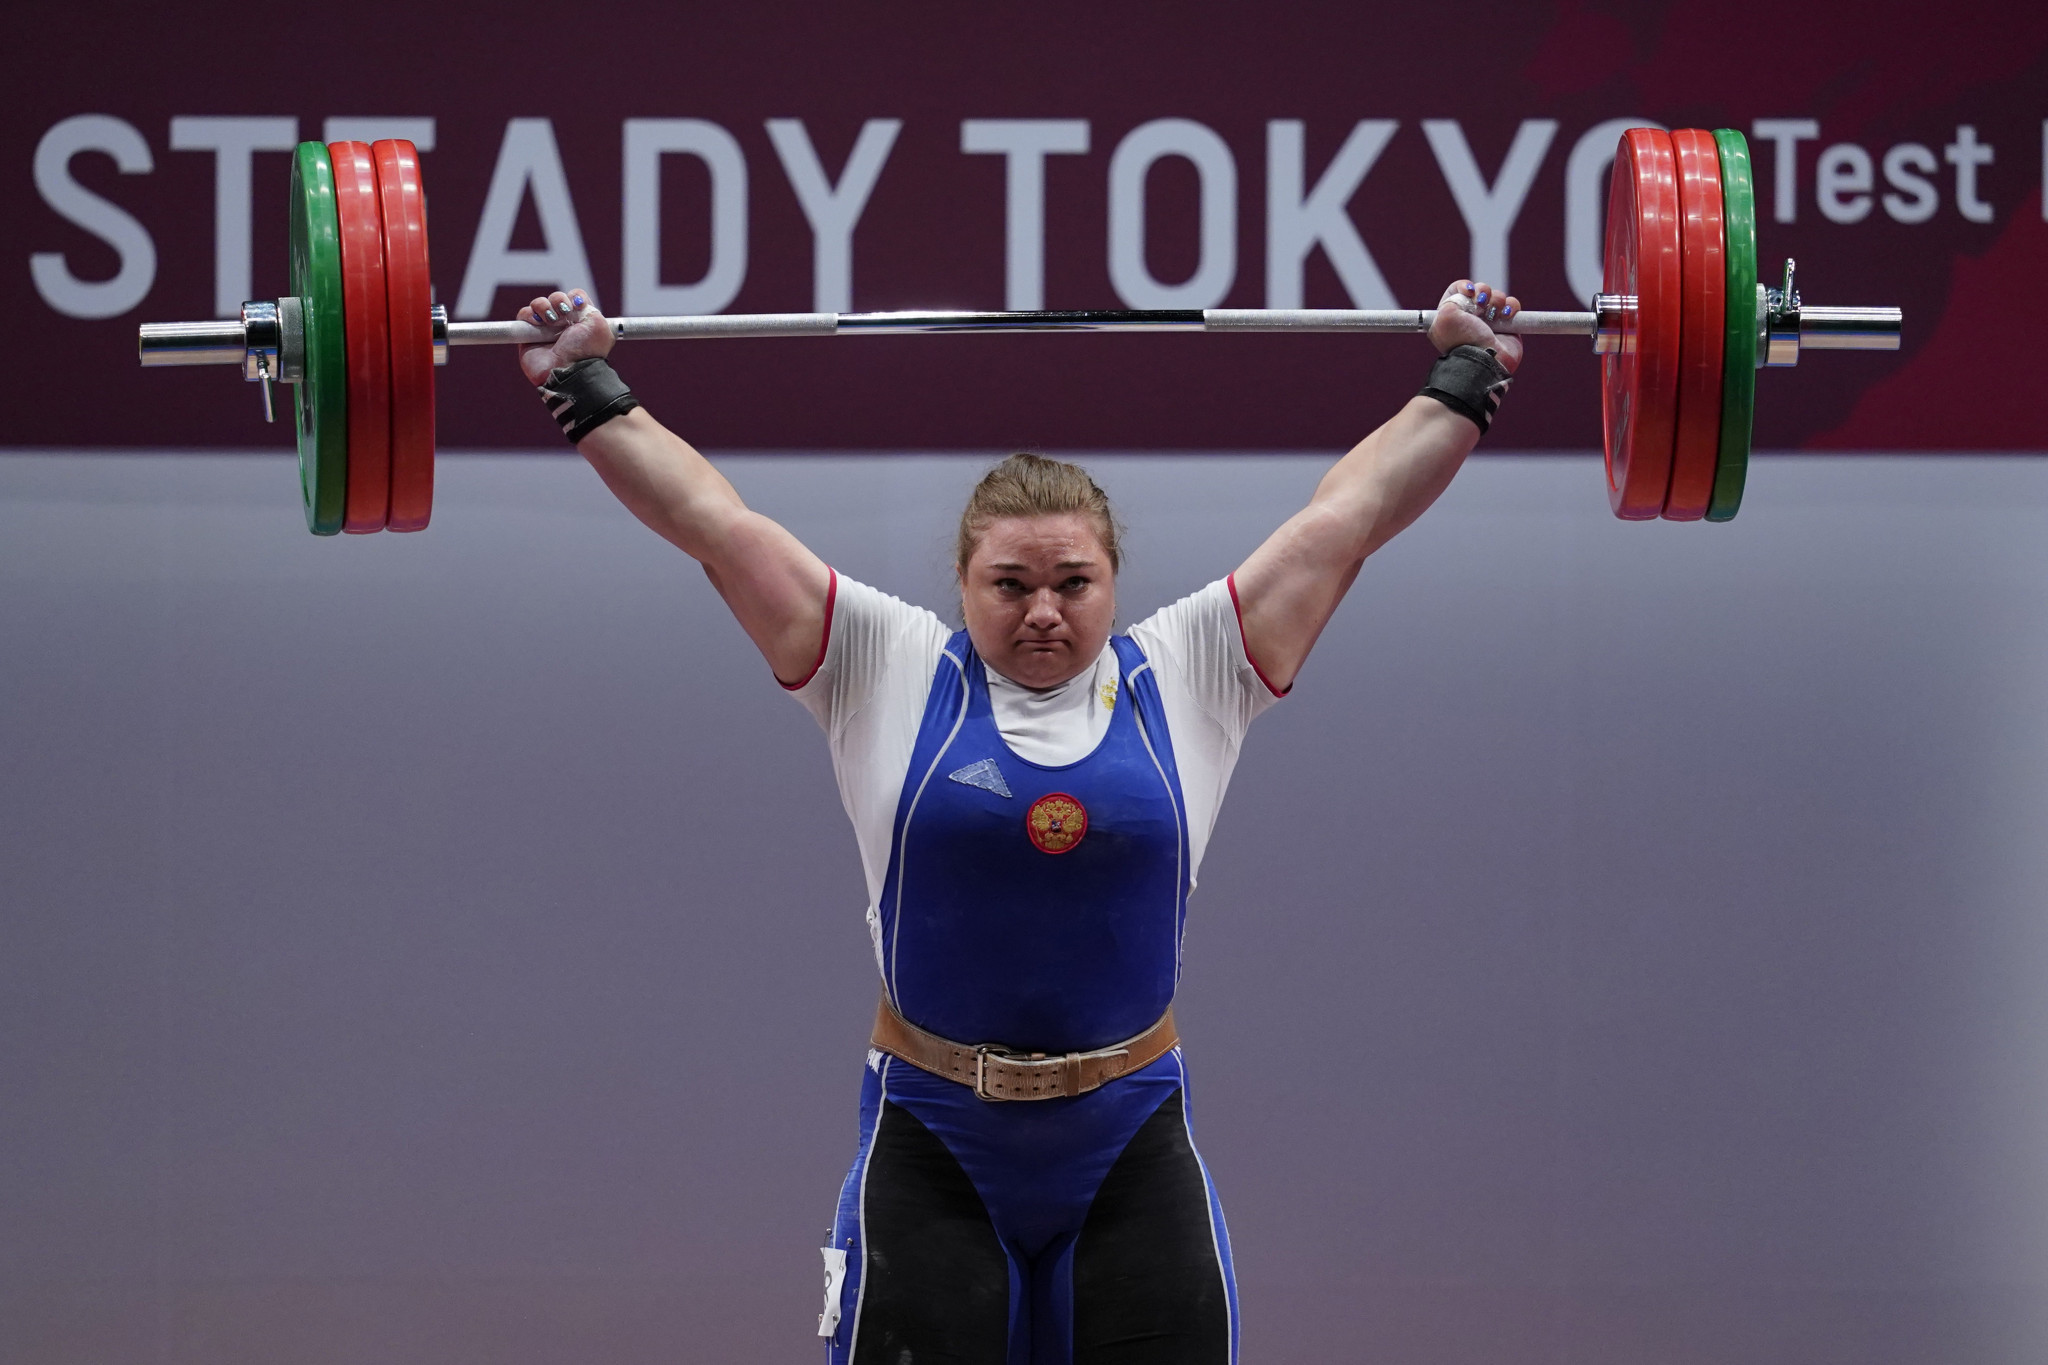 Russia's top weightlifter Kashirina suspended for suspected doping